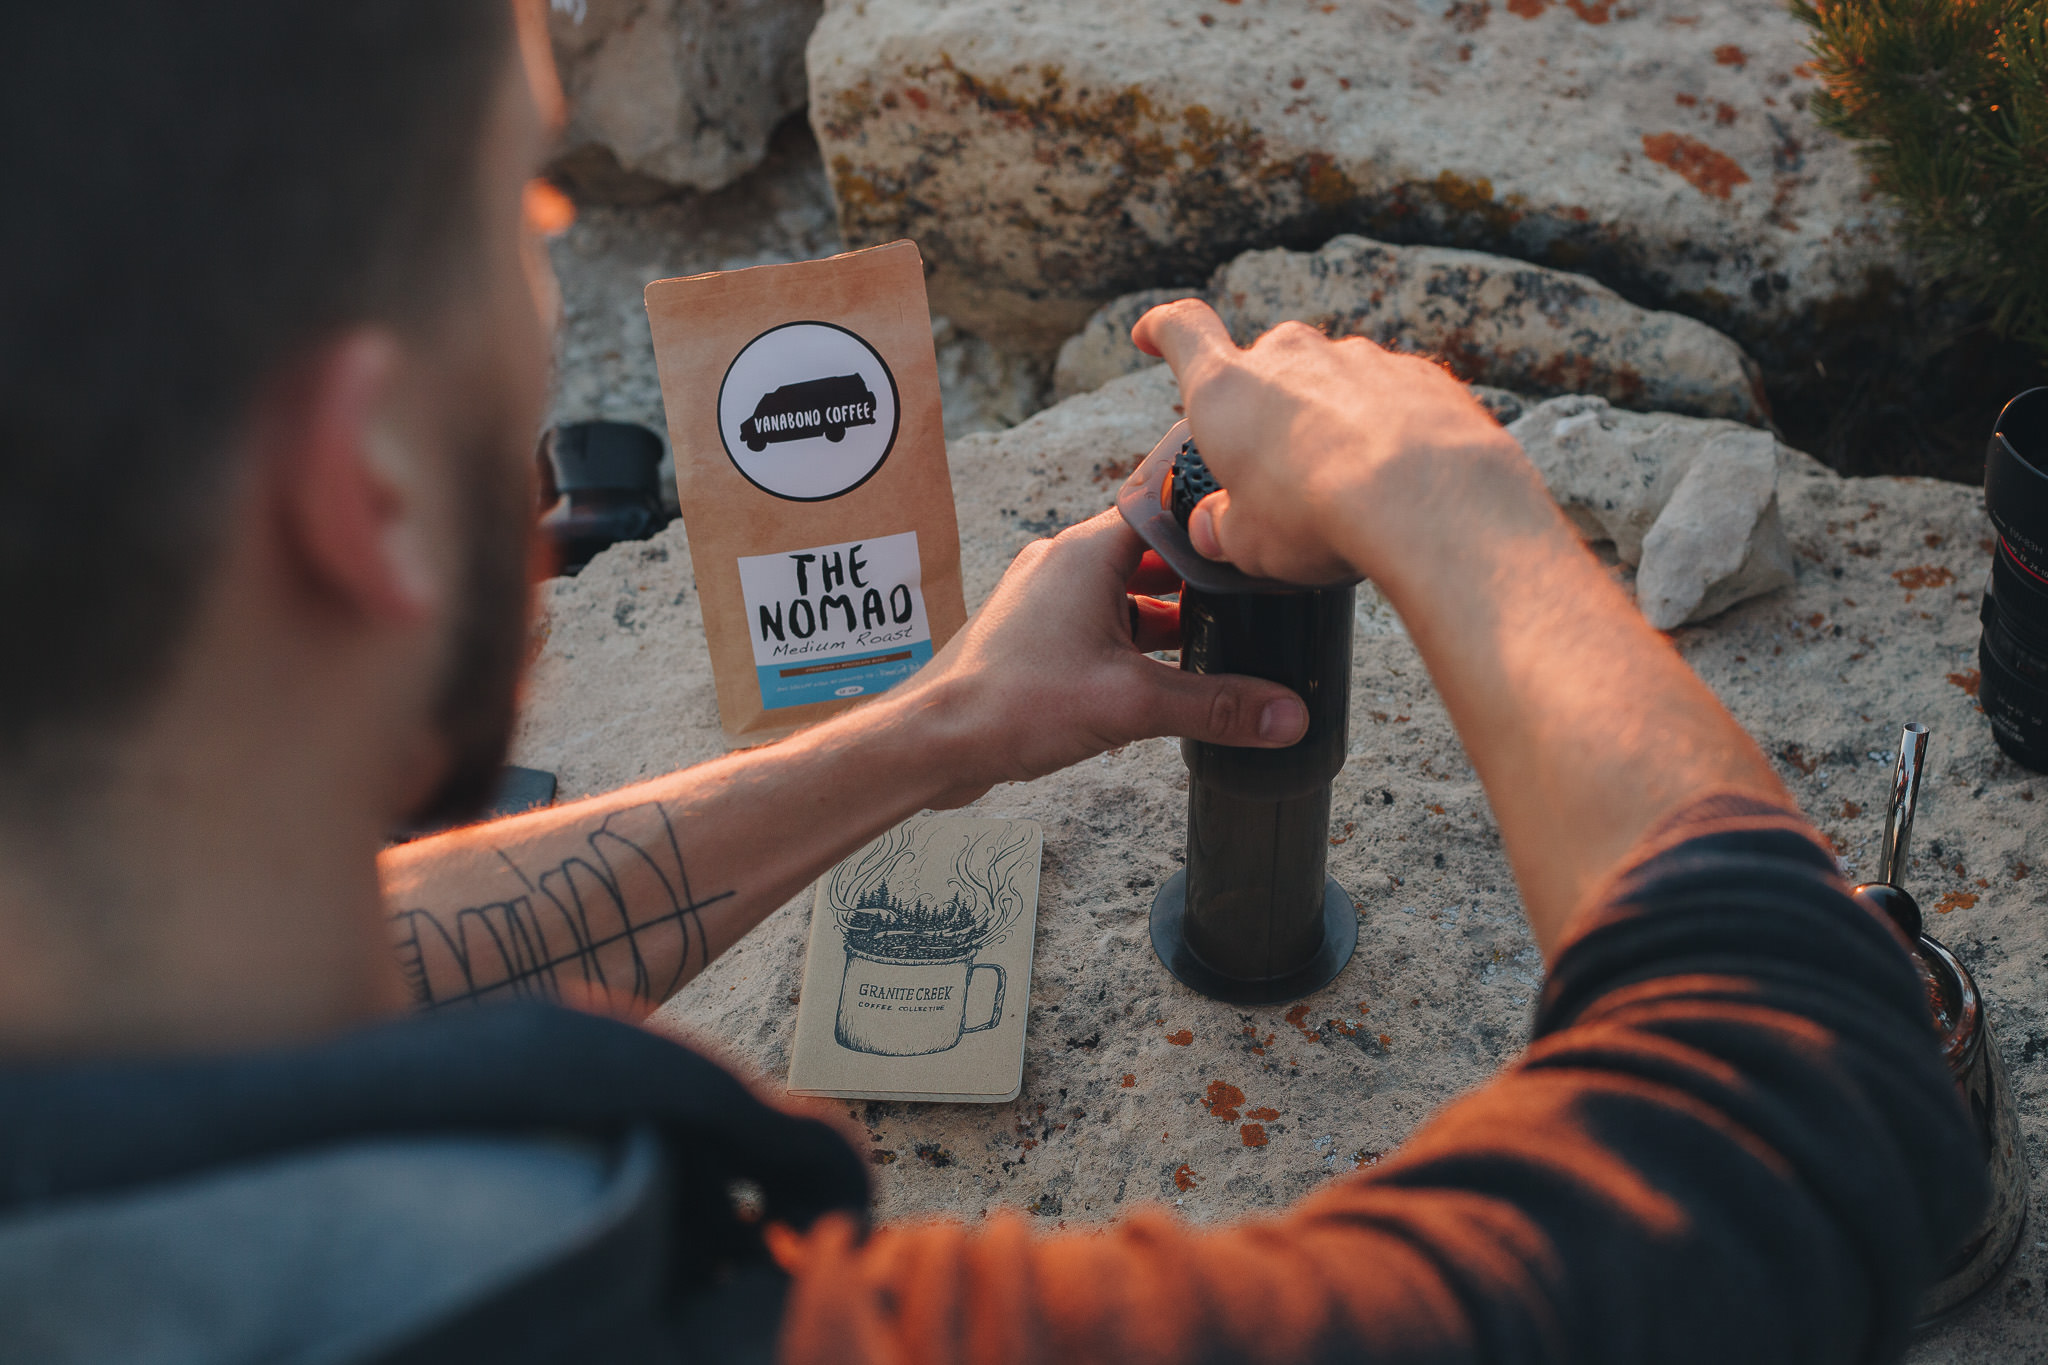 Steeping coffee in an Aeropress while adventuring outdoors